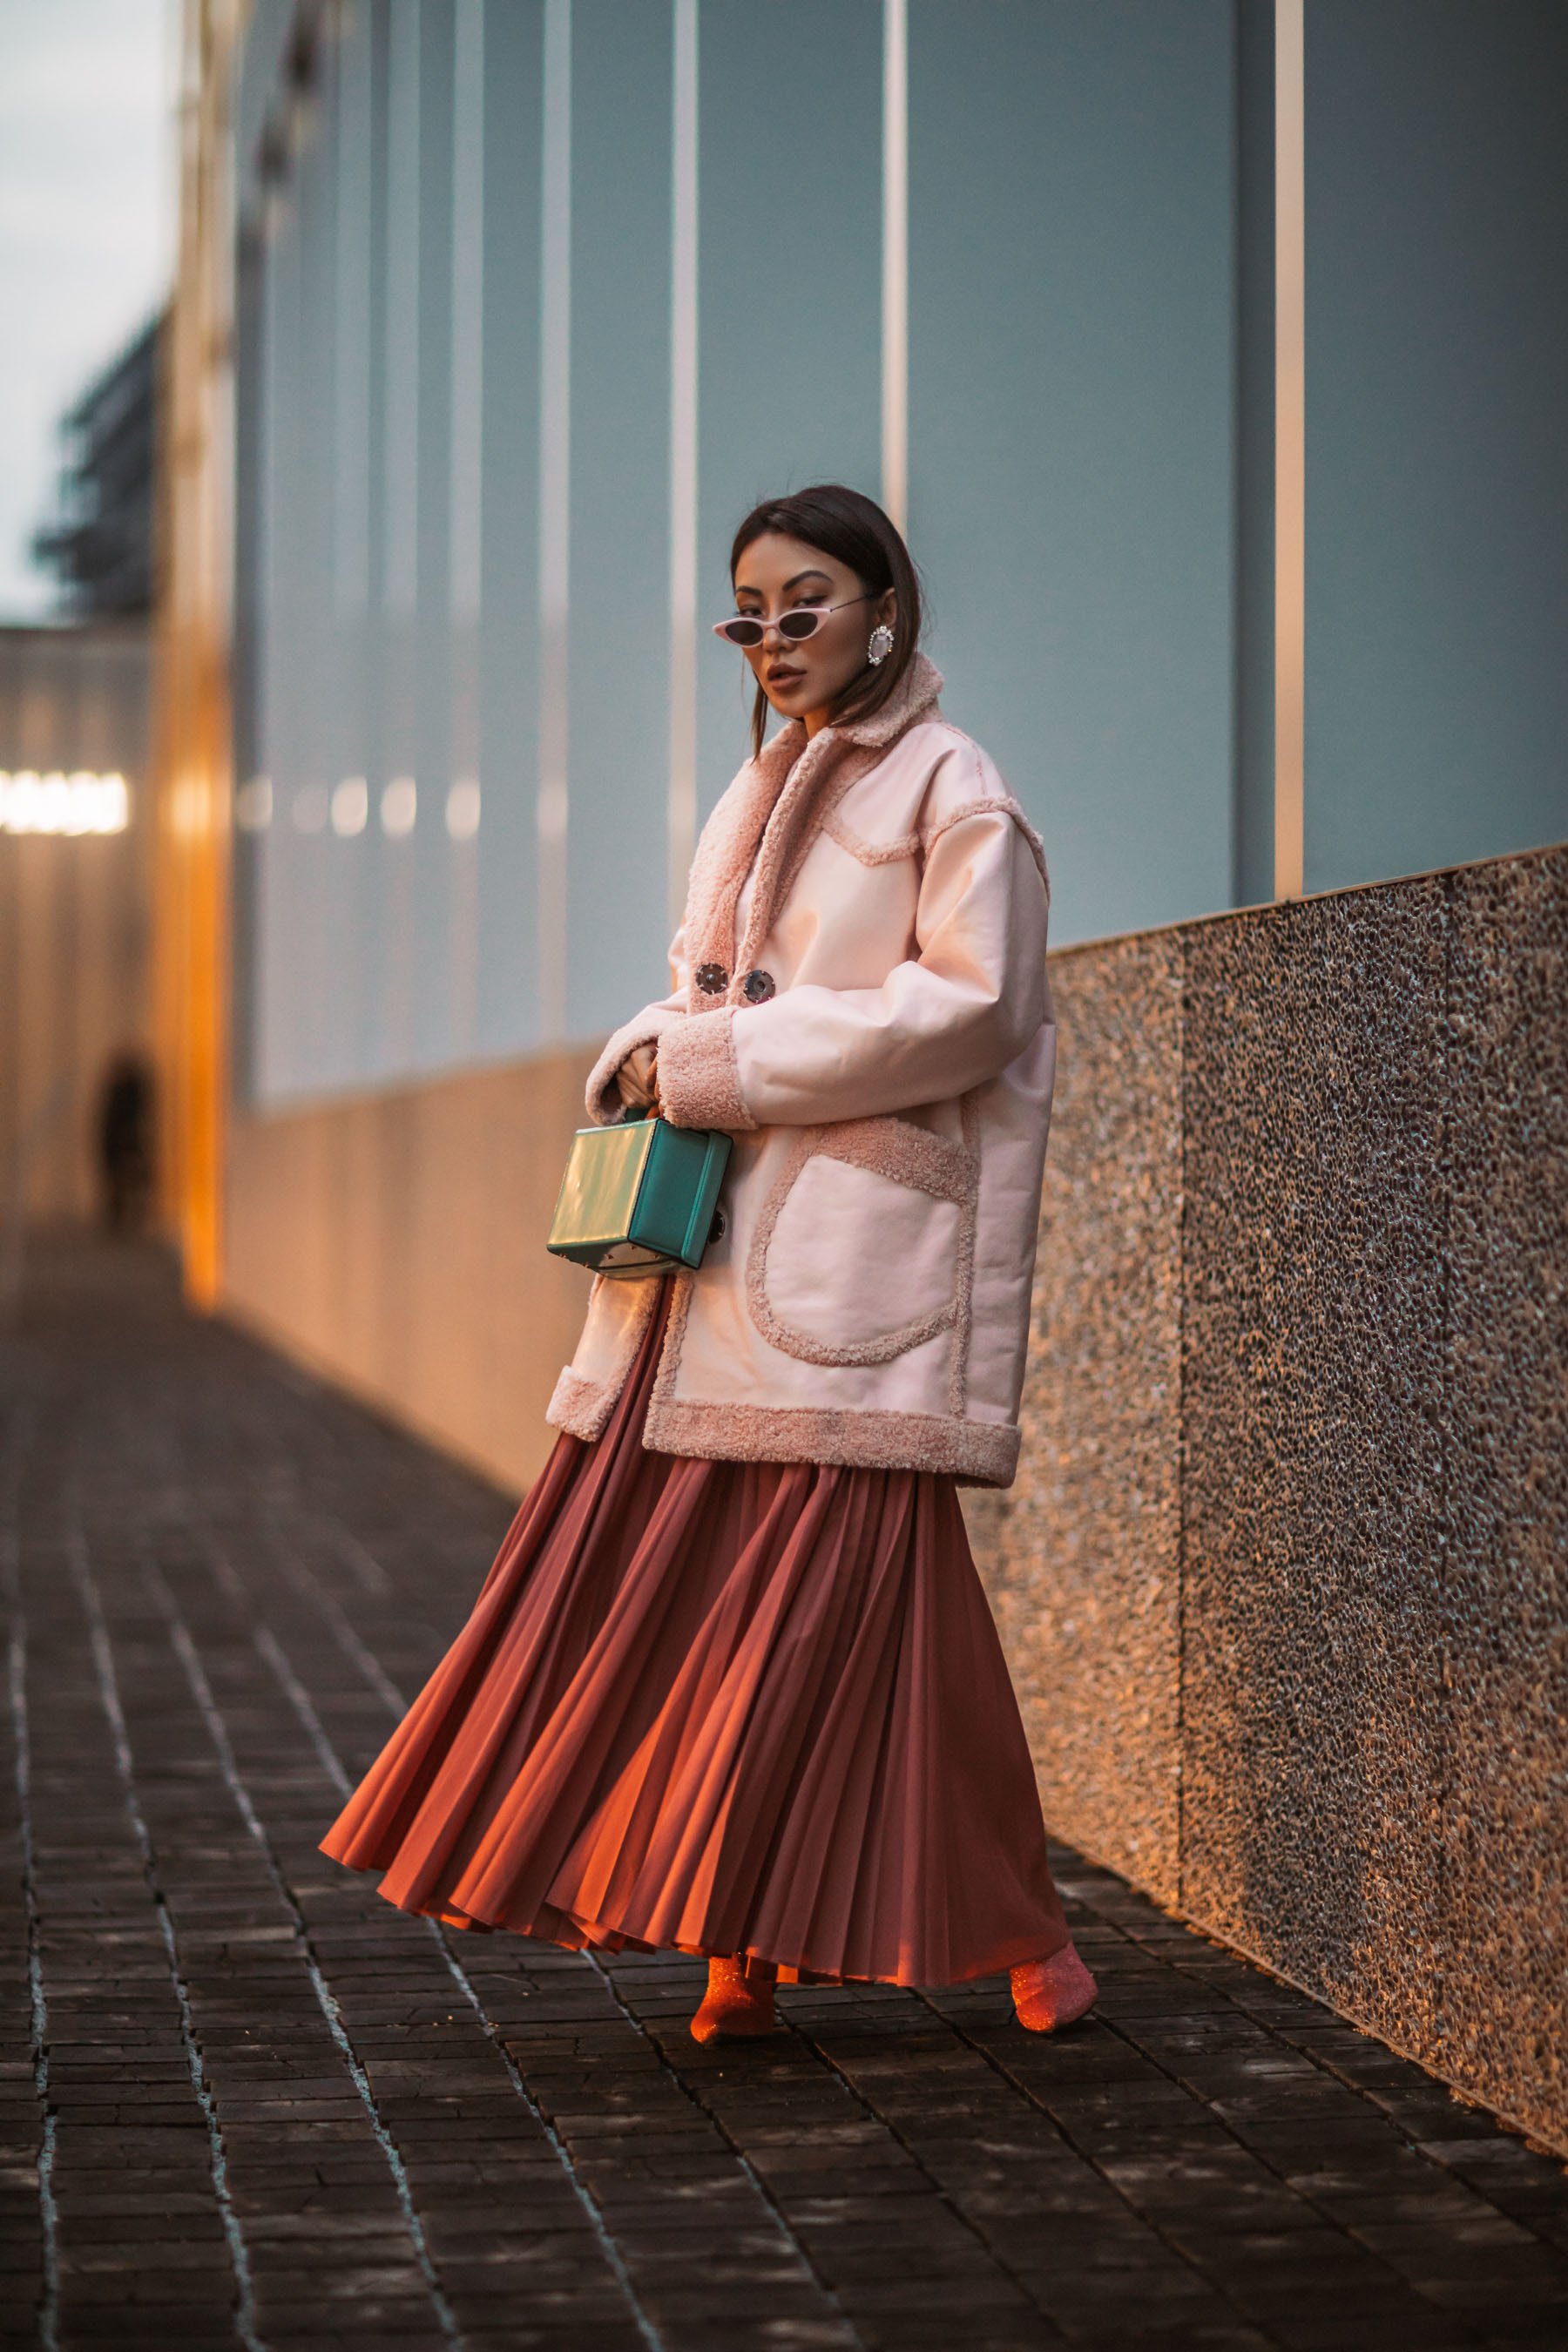 Milan Fashion Week - Pink Shearling Jacket, pleated skirt, mfw street style // Notjessfashion.com